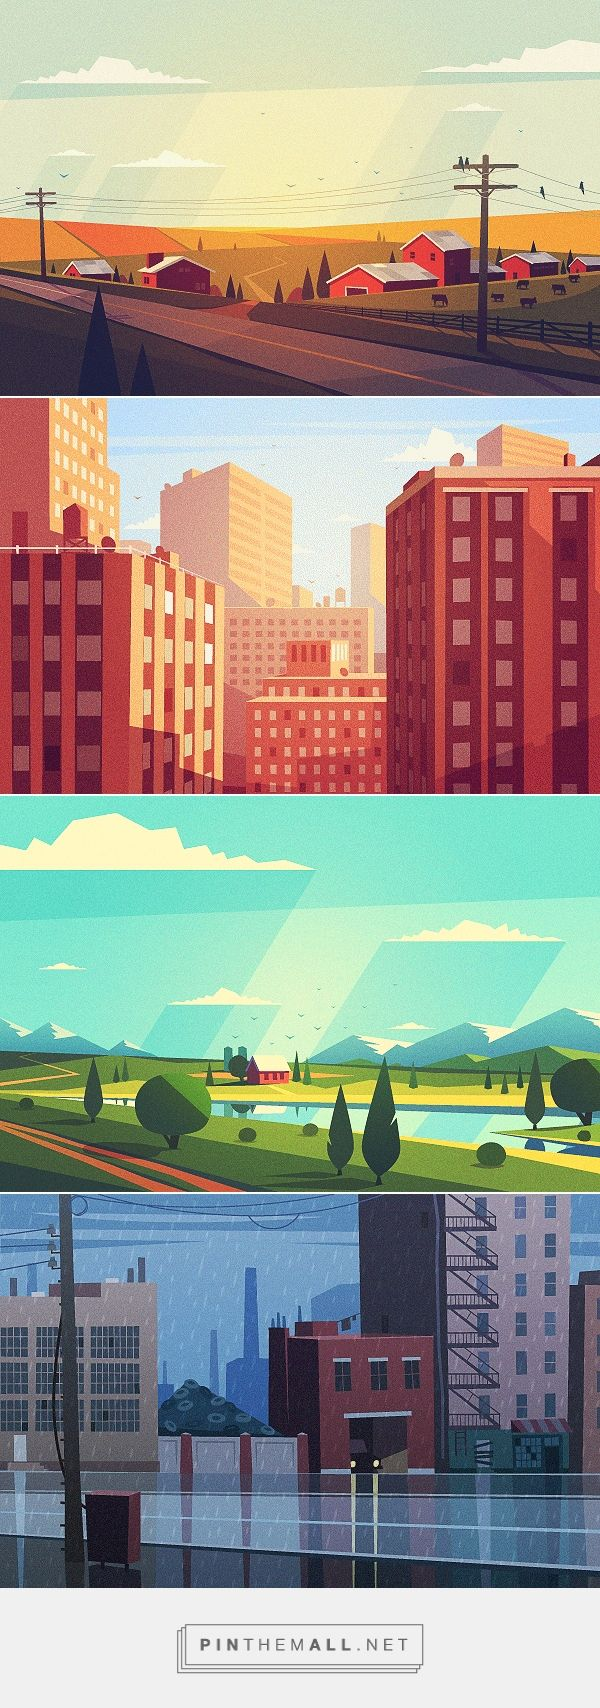 Vector Landscapes on Behance - created on 2016-03-14 03:13:07